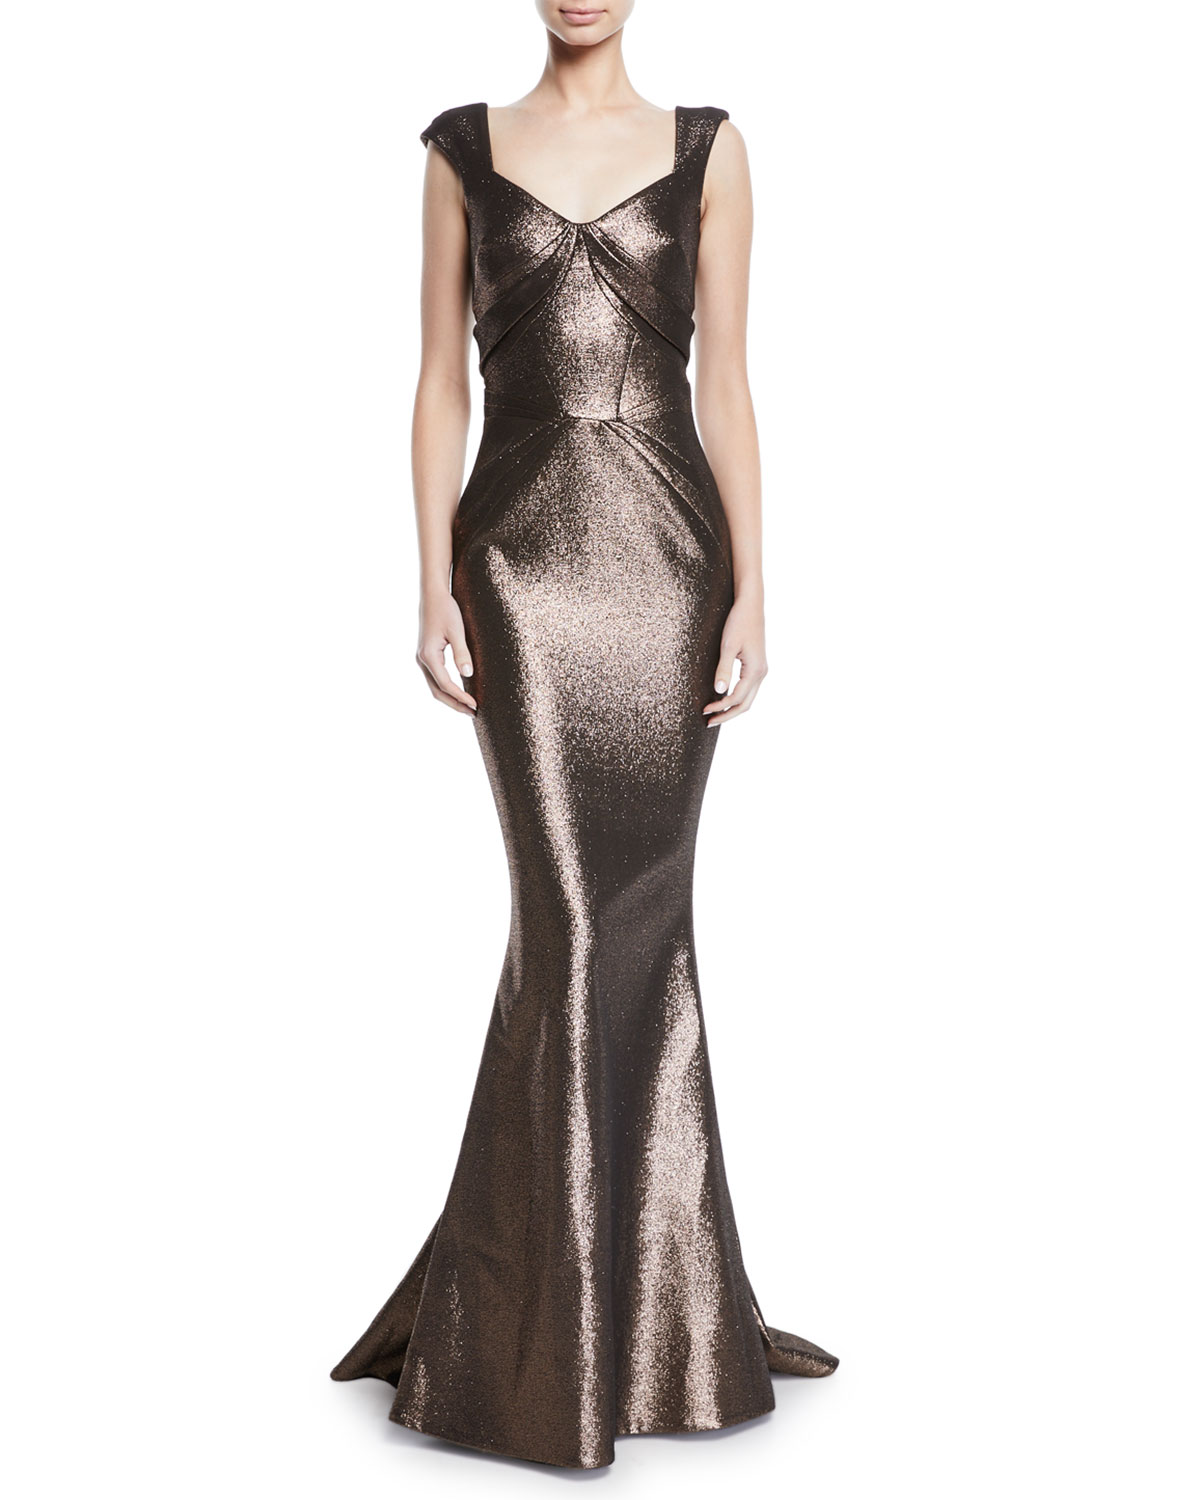 Sweetheart Cap-Sleeve Lame Mermaid Gown, Brown Metallic